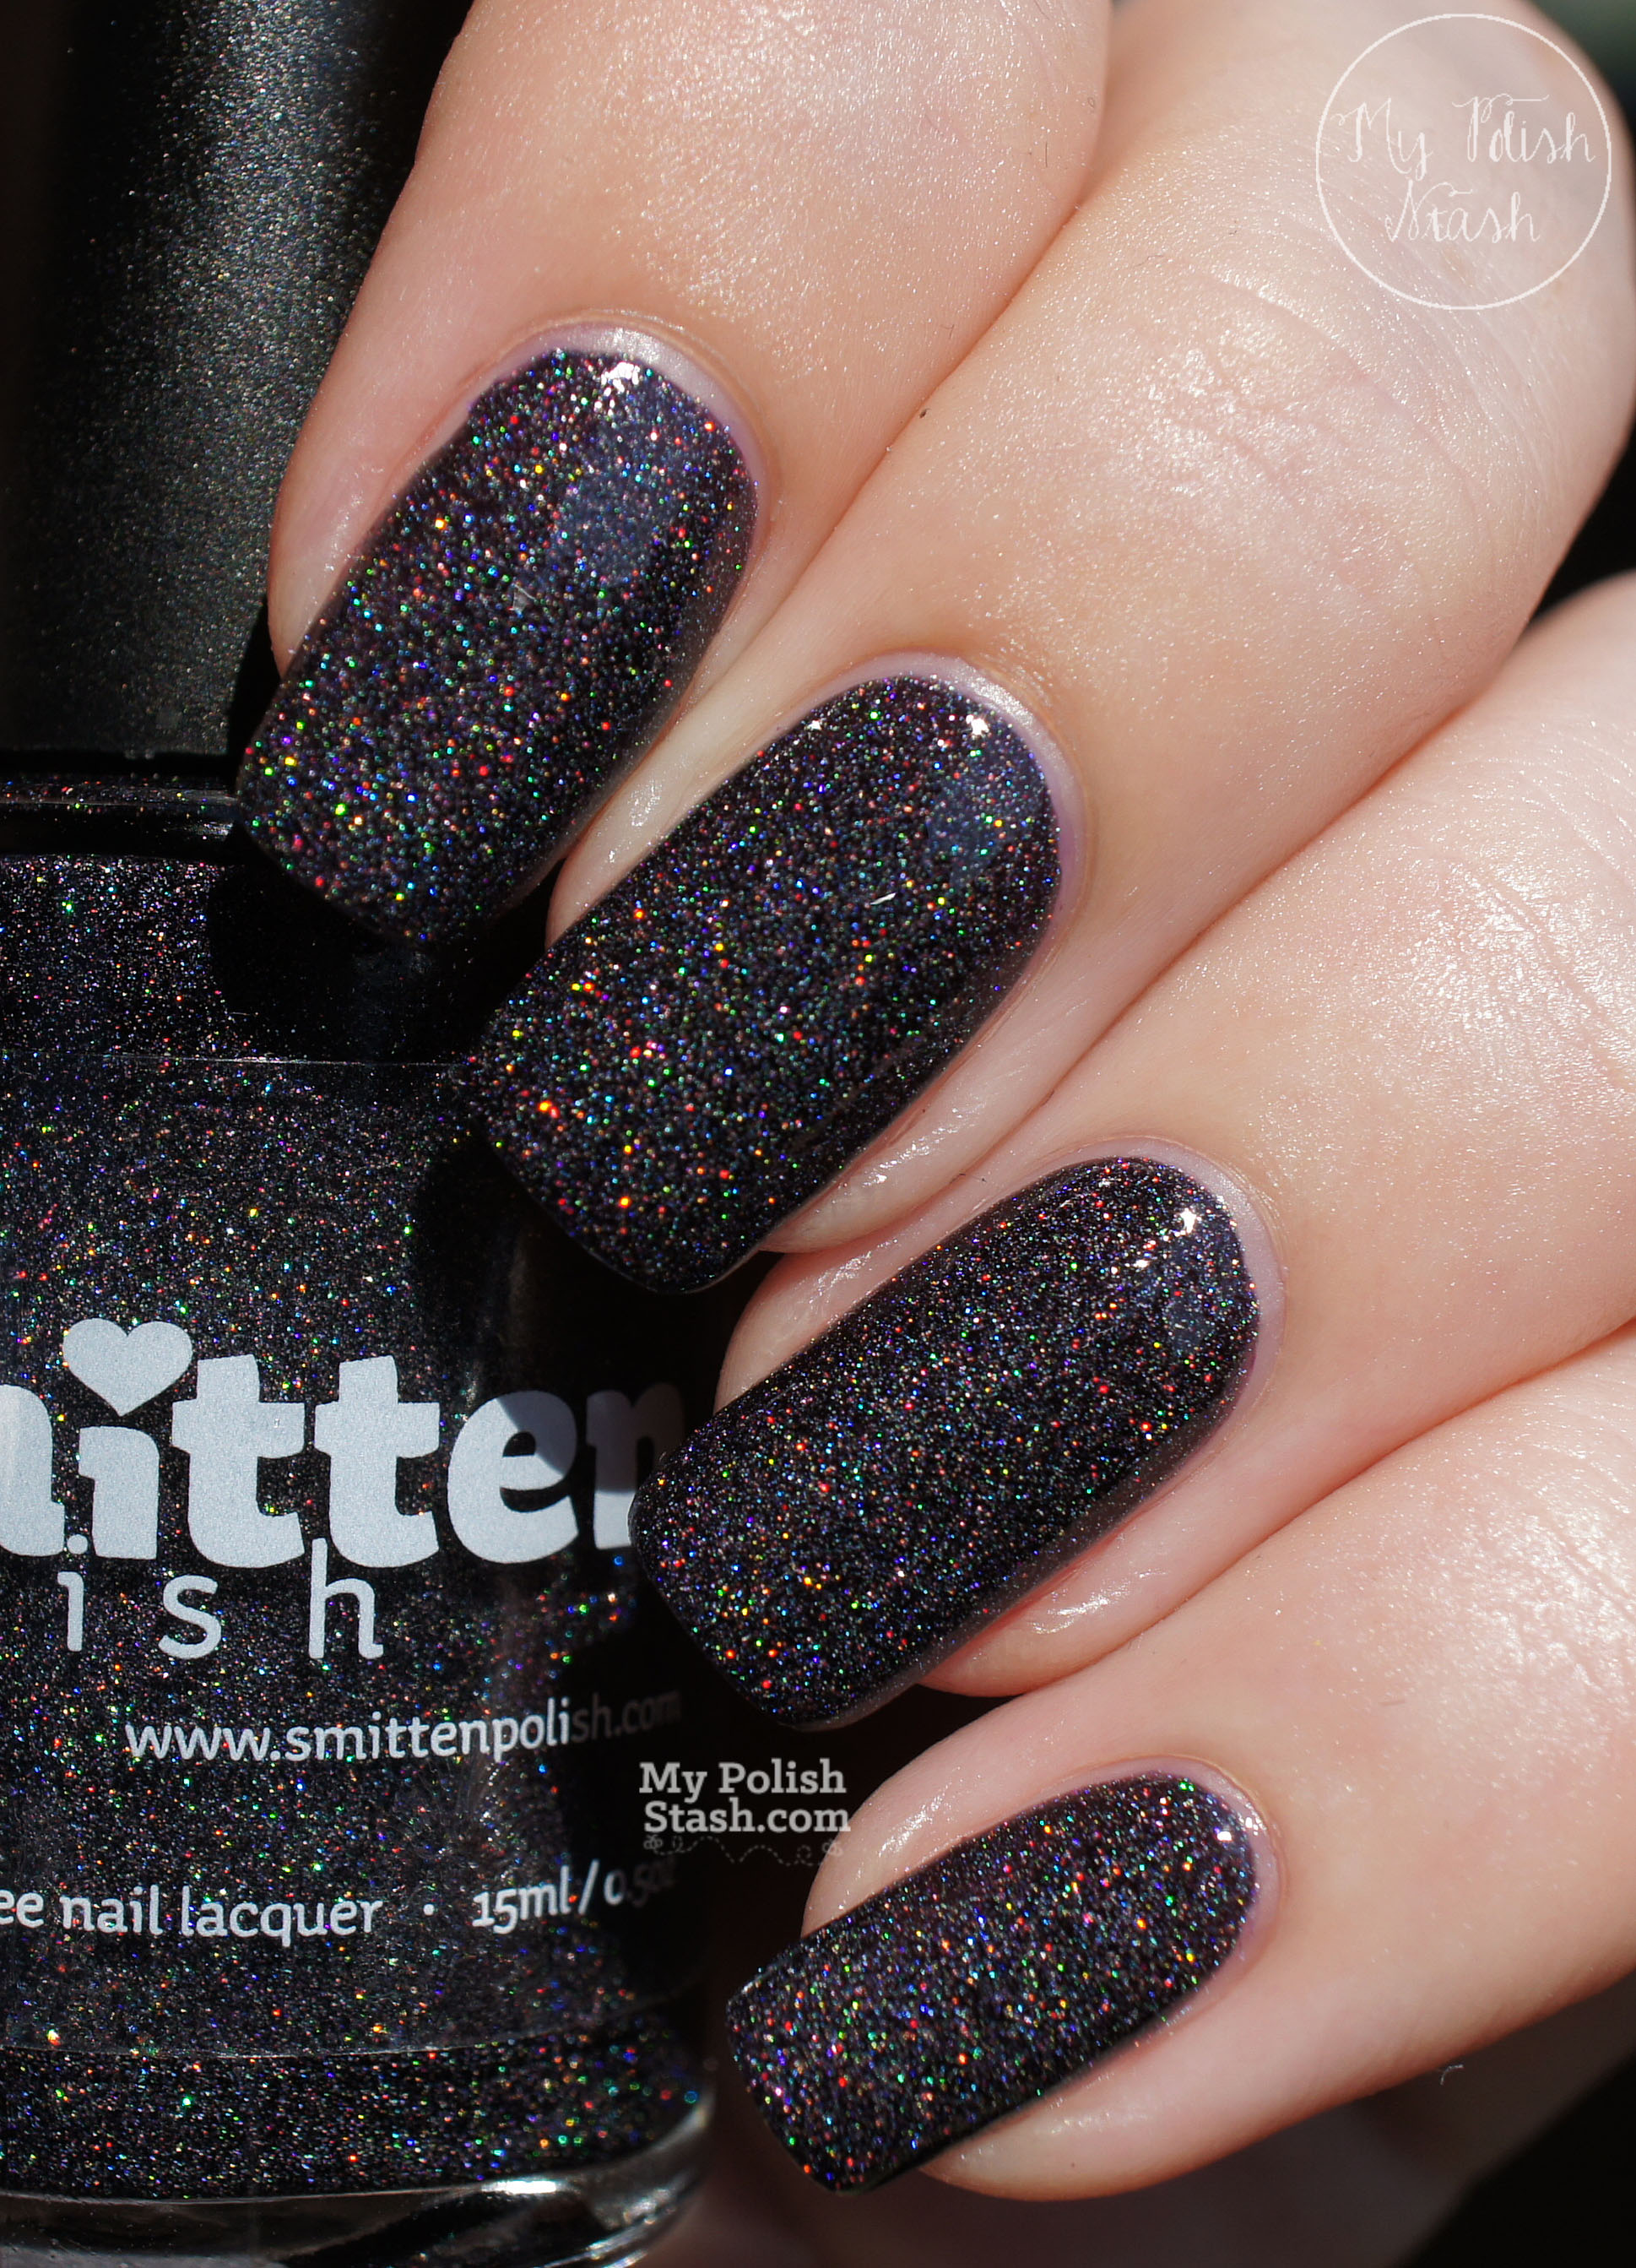 smitten-polish-cauldron-bubbles-2